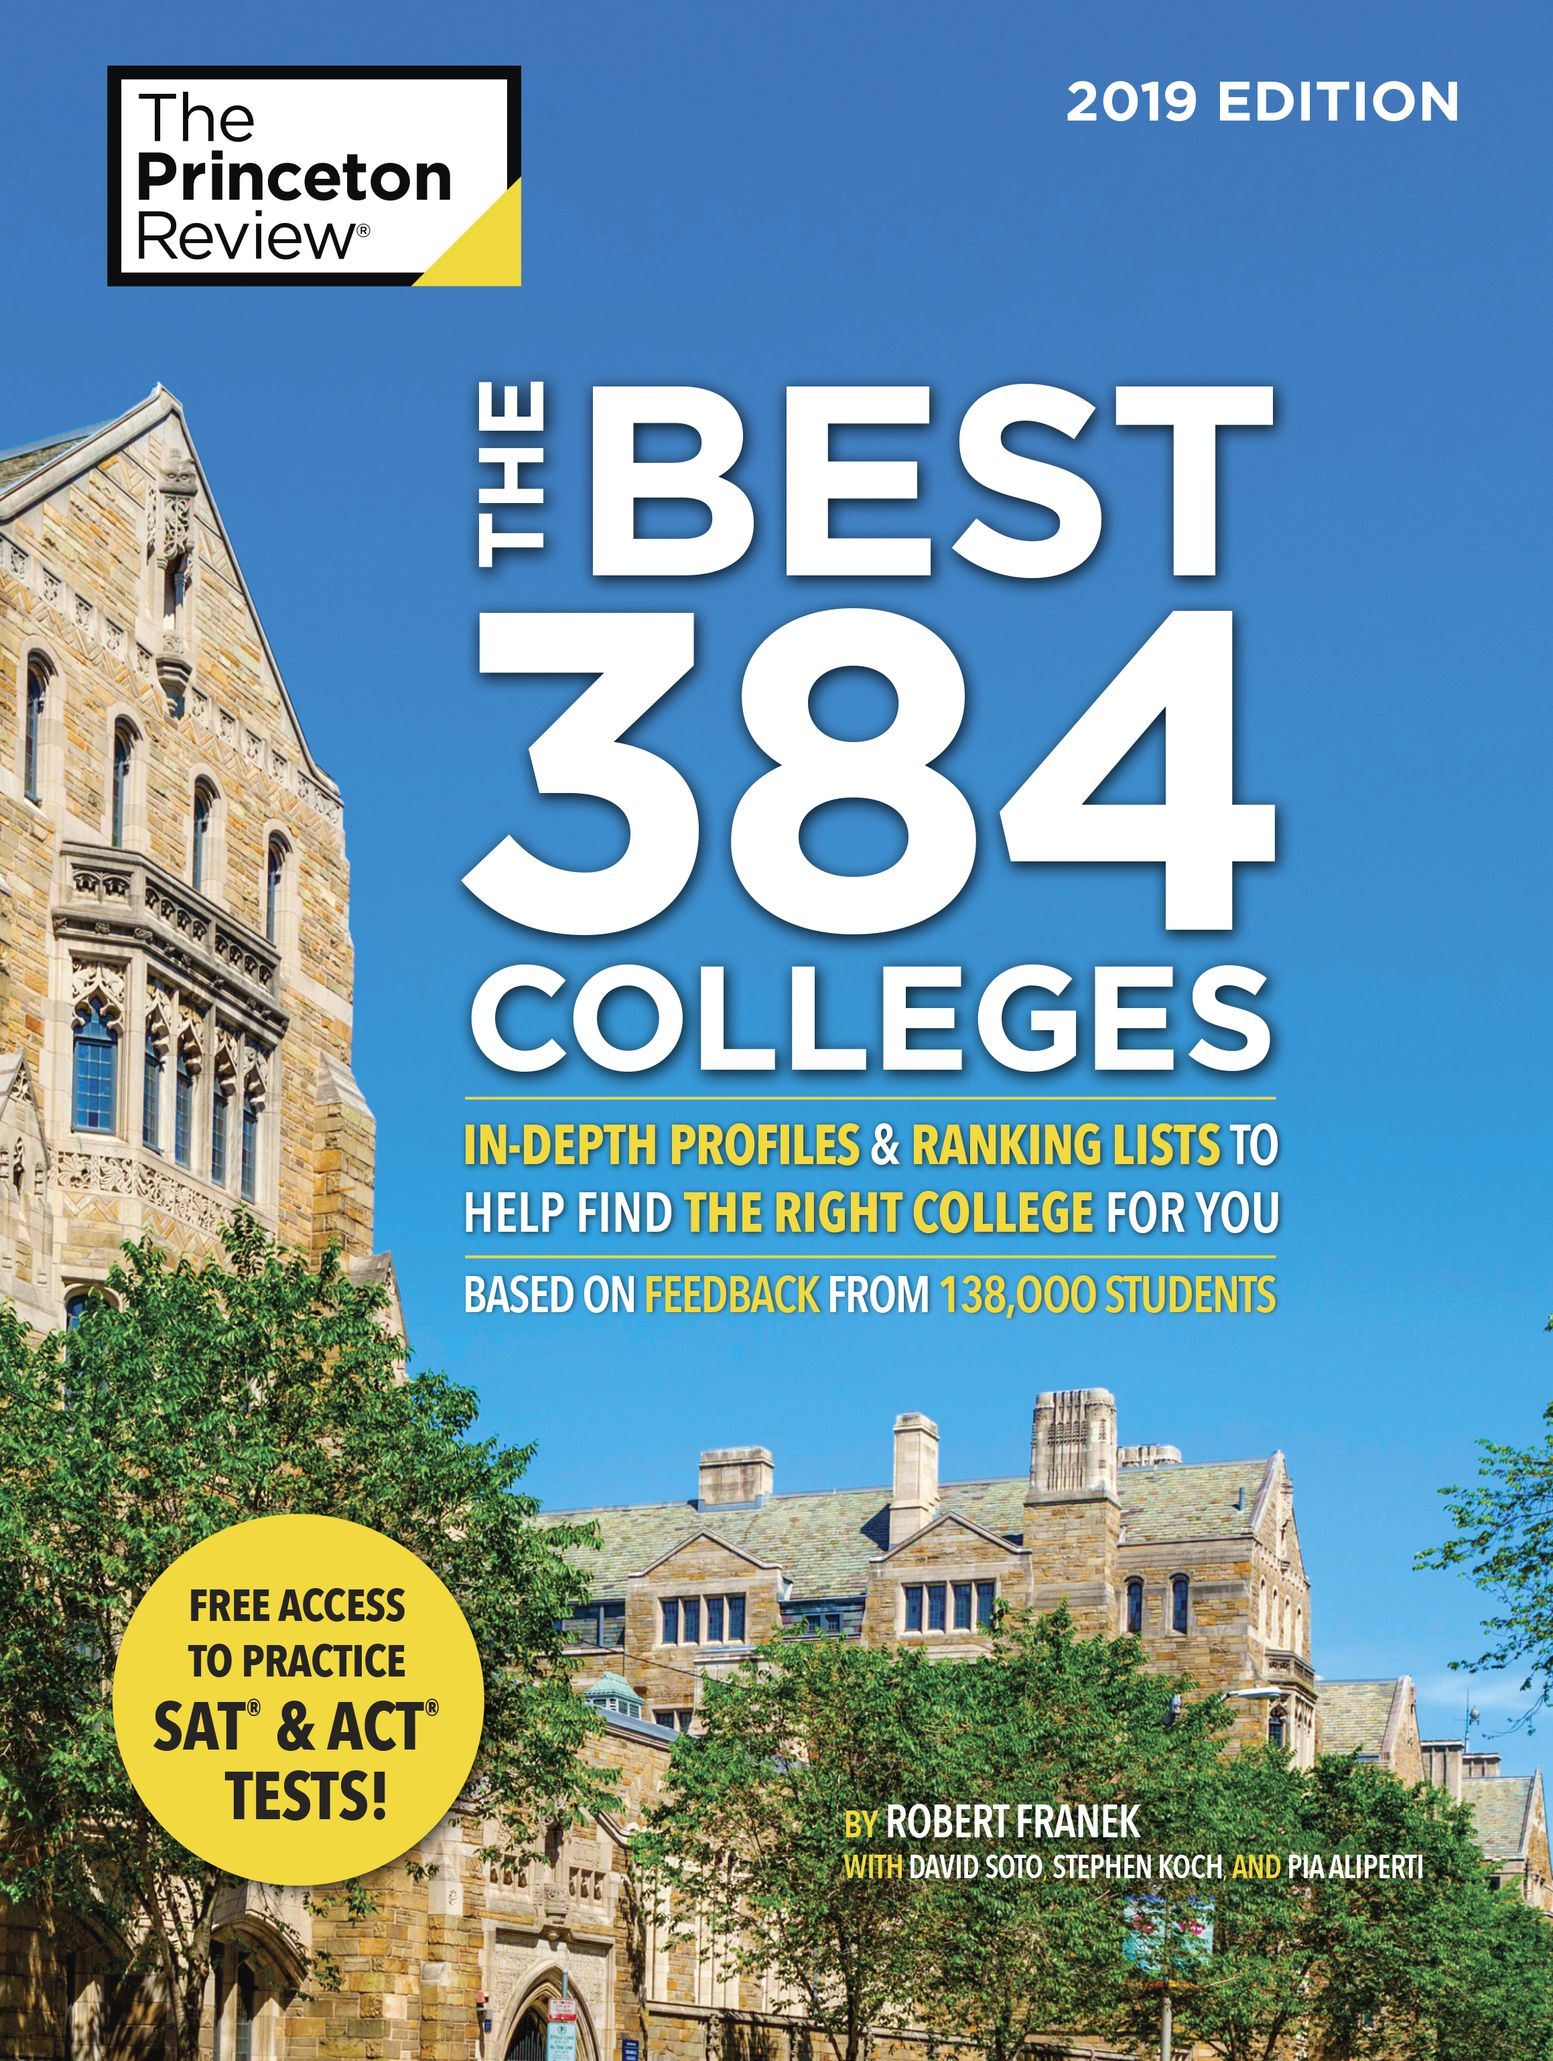 The Best 384 Colleges: In-Depth Profiles & Ranking Lists to Help Find the Right College For You, 2019 Edition